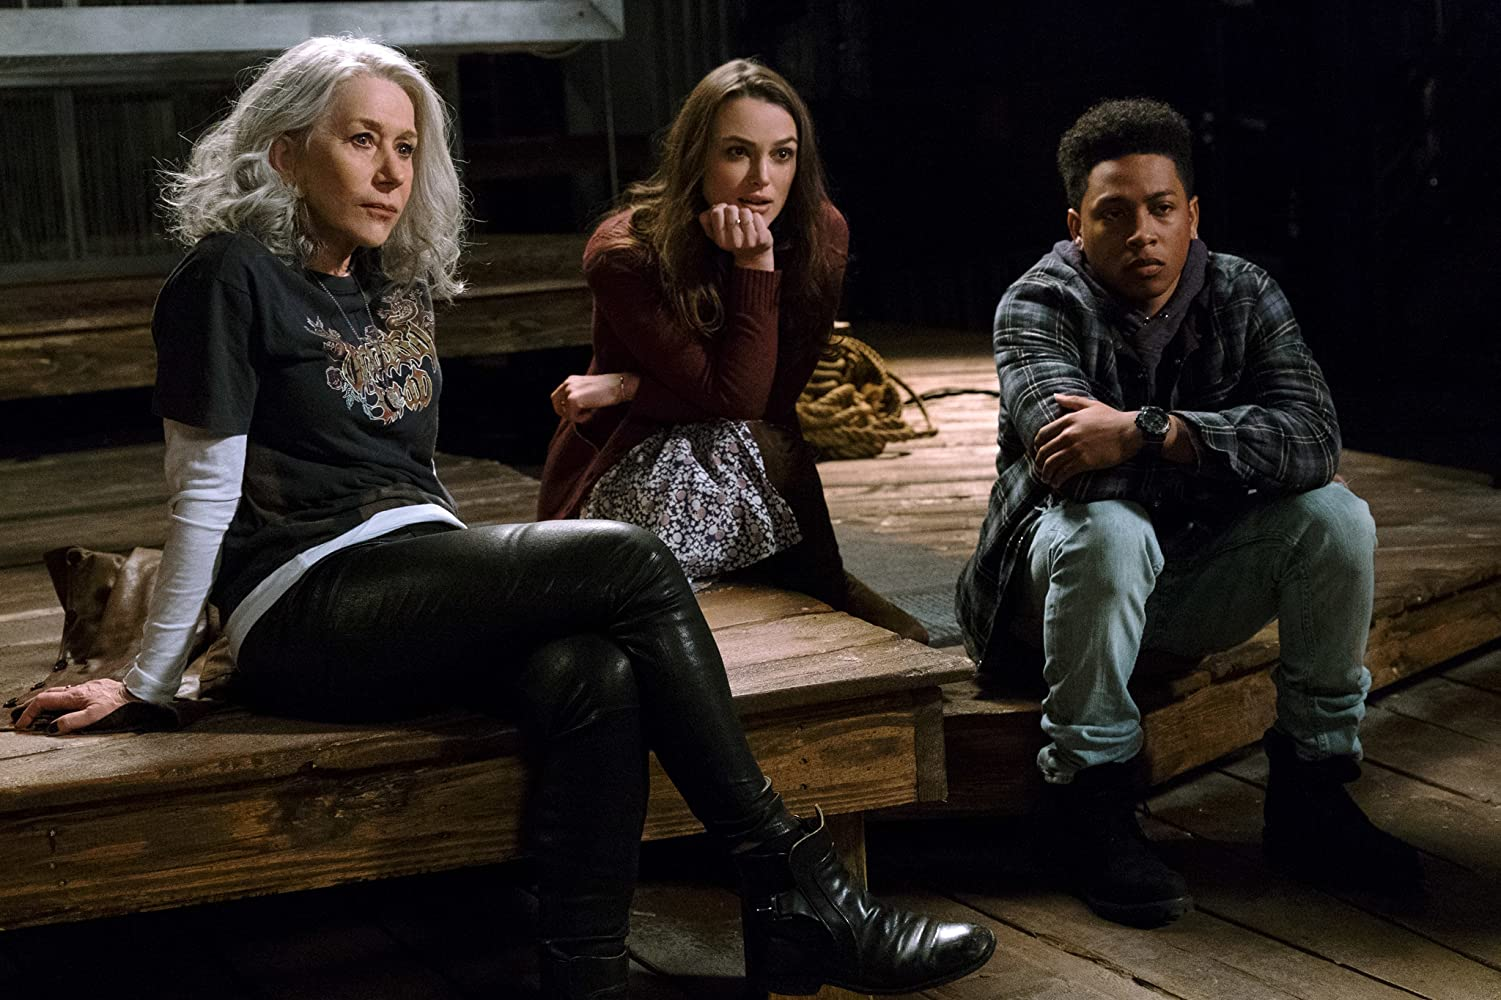 Helen Mirren, Keira Knightley, and Jacob Latimore in Collateral Beauty (2016)